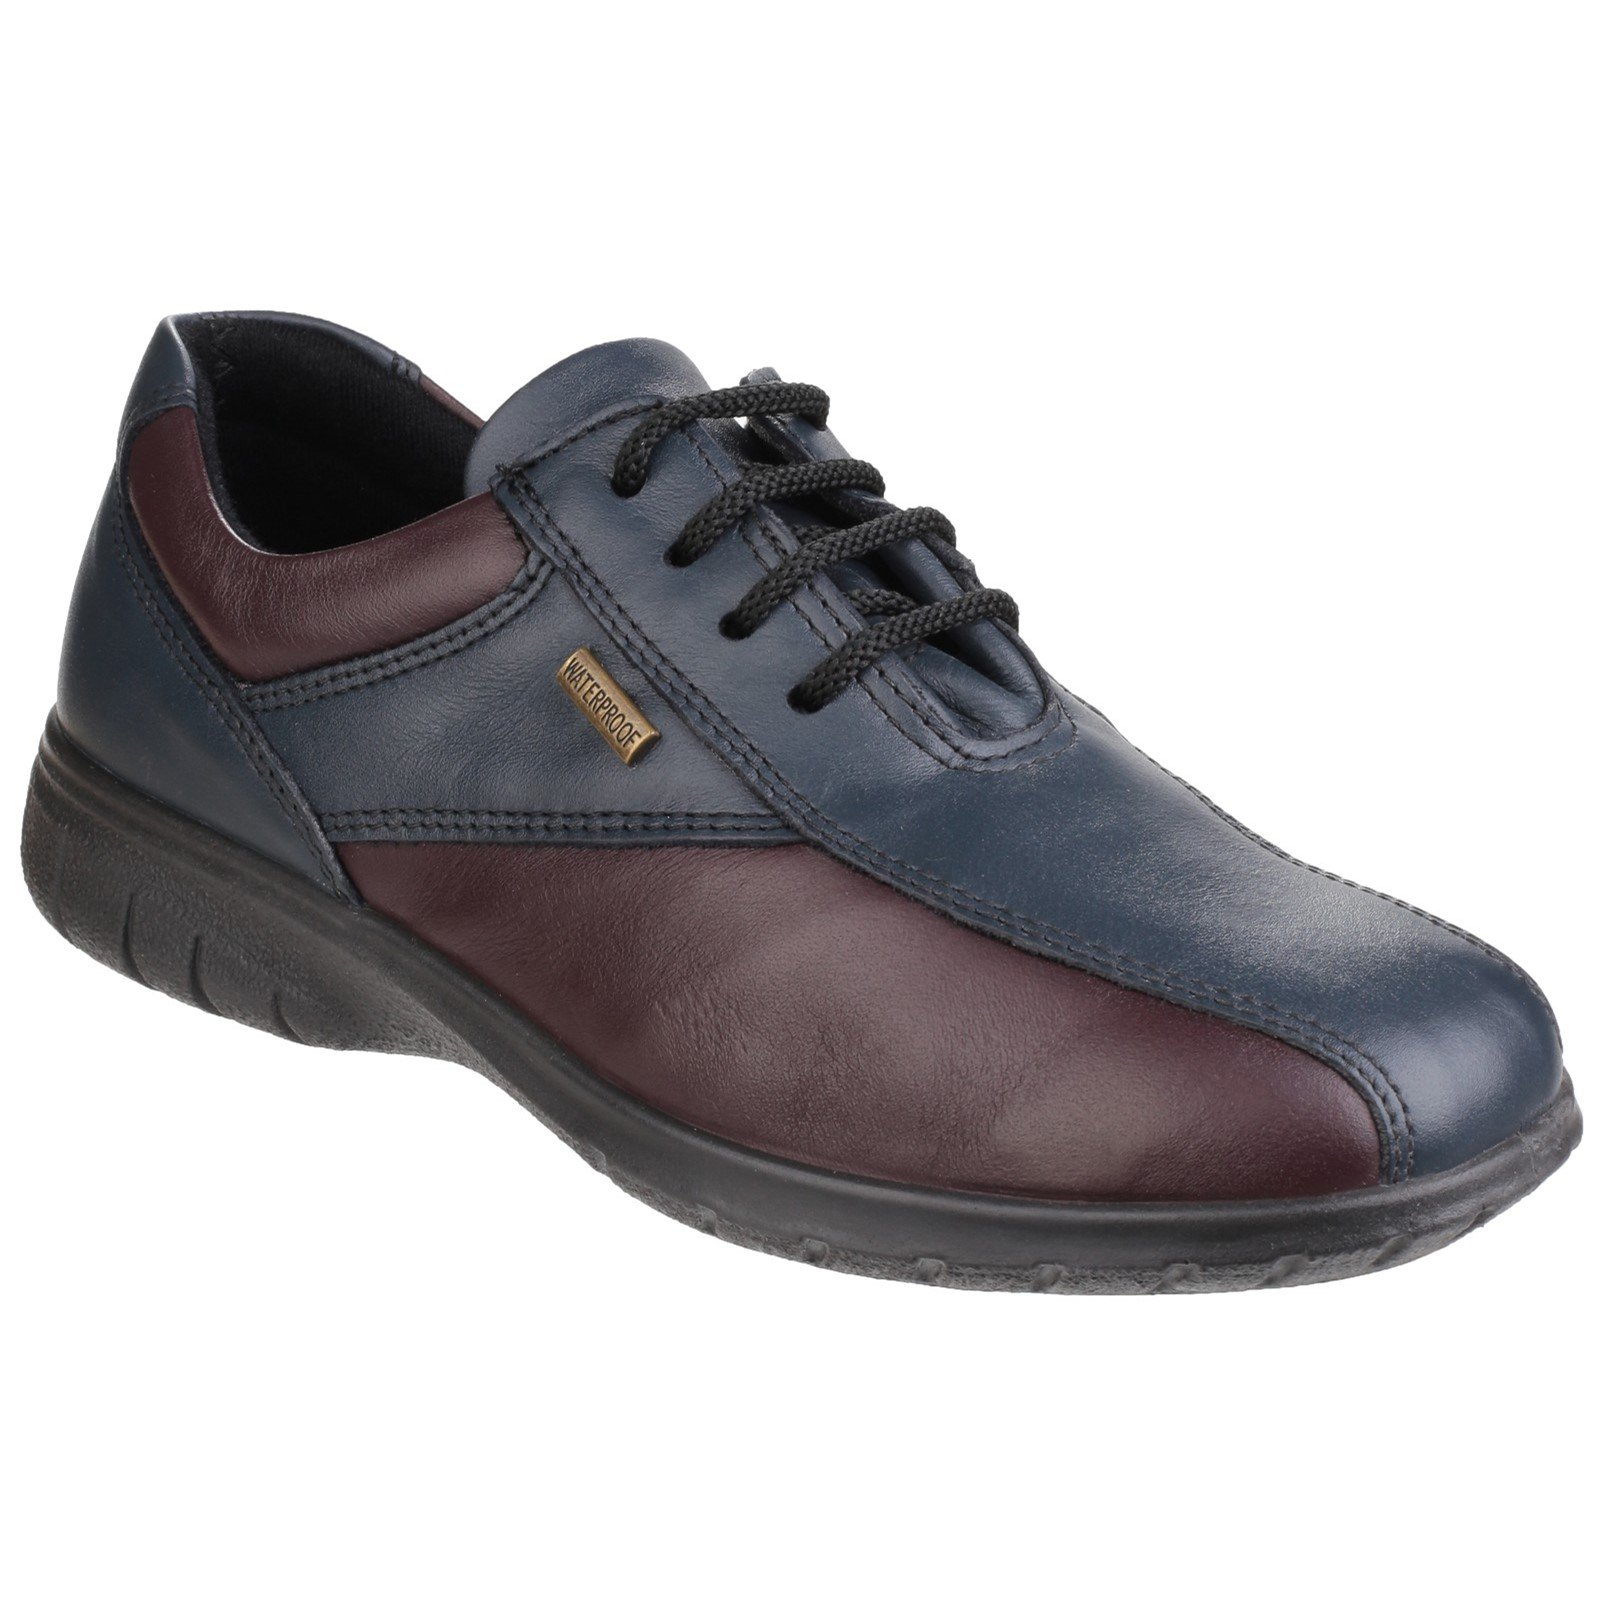 Cotswold Women's Collection Salford Shoe Various Colours 32981 - Navy/Bordo 7